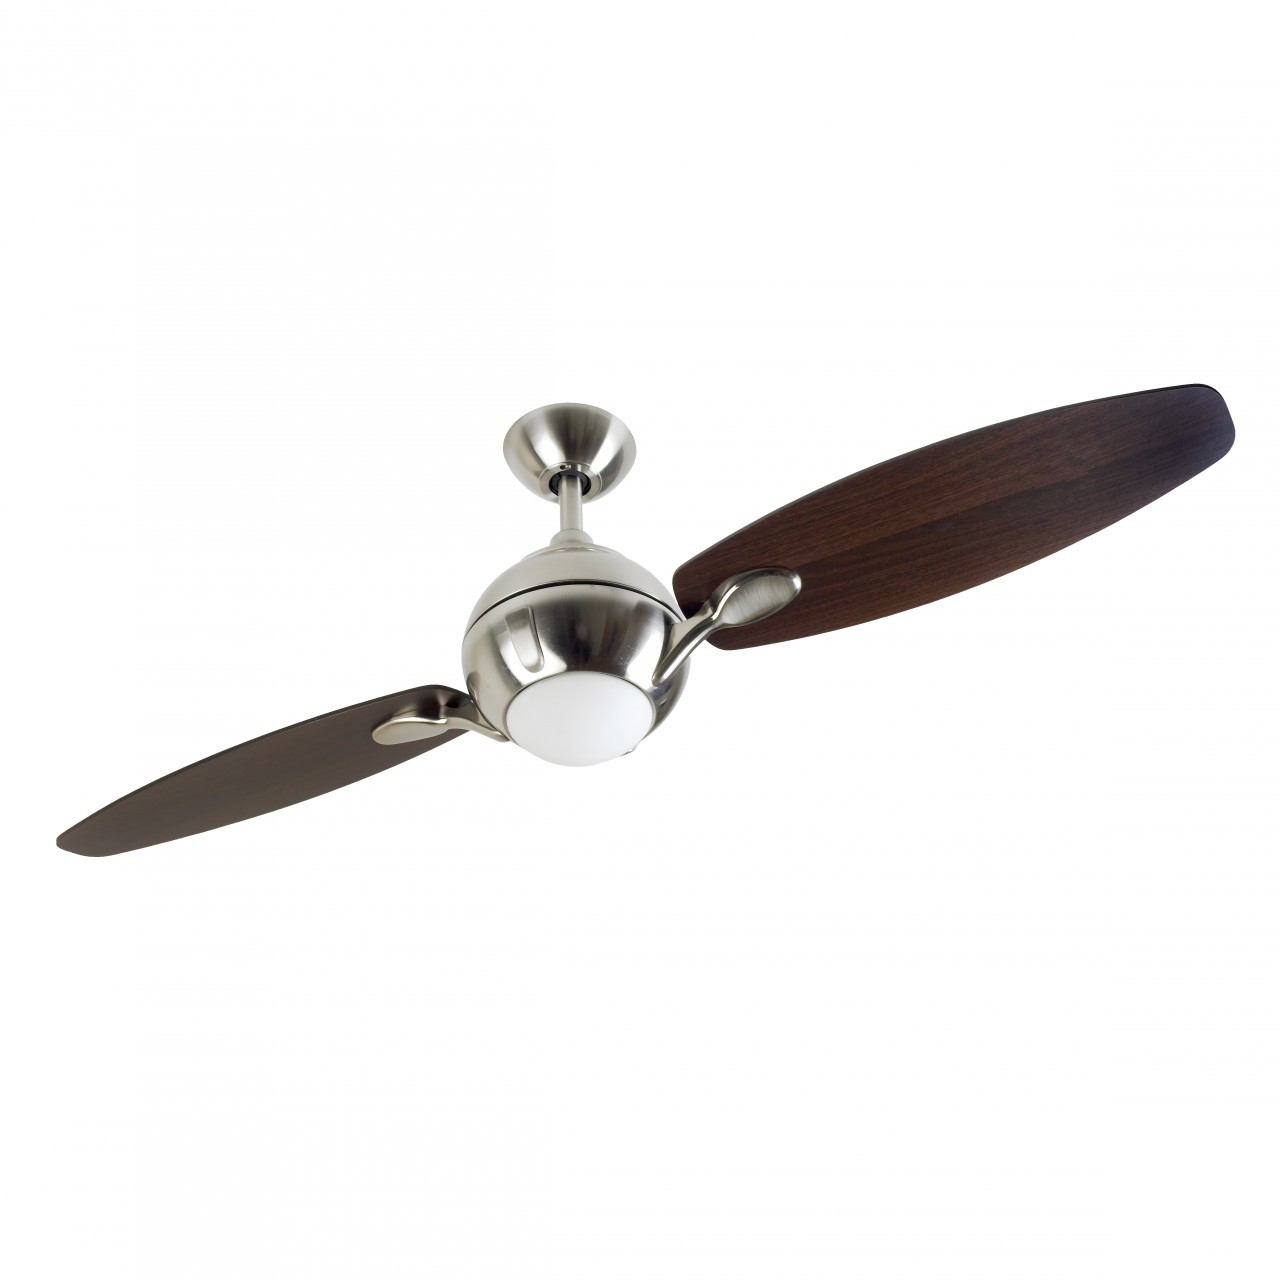 Fantasia Propeller 54 Inch Remote Control Brushed Nickel 2 Blade Ceiling Fan With Dark Oak Blades And Light